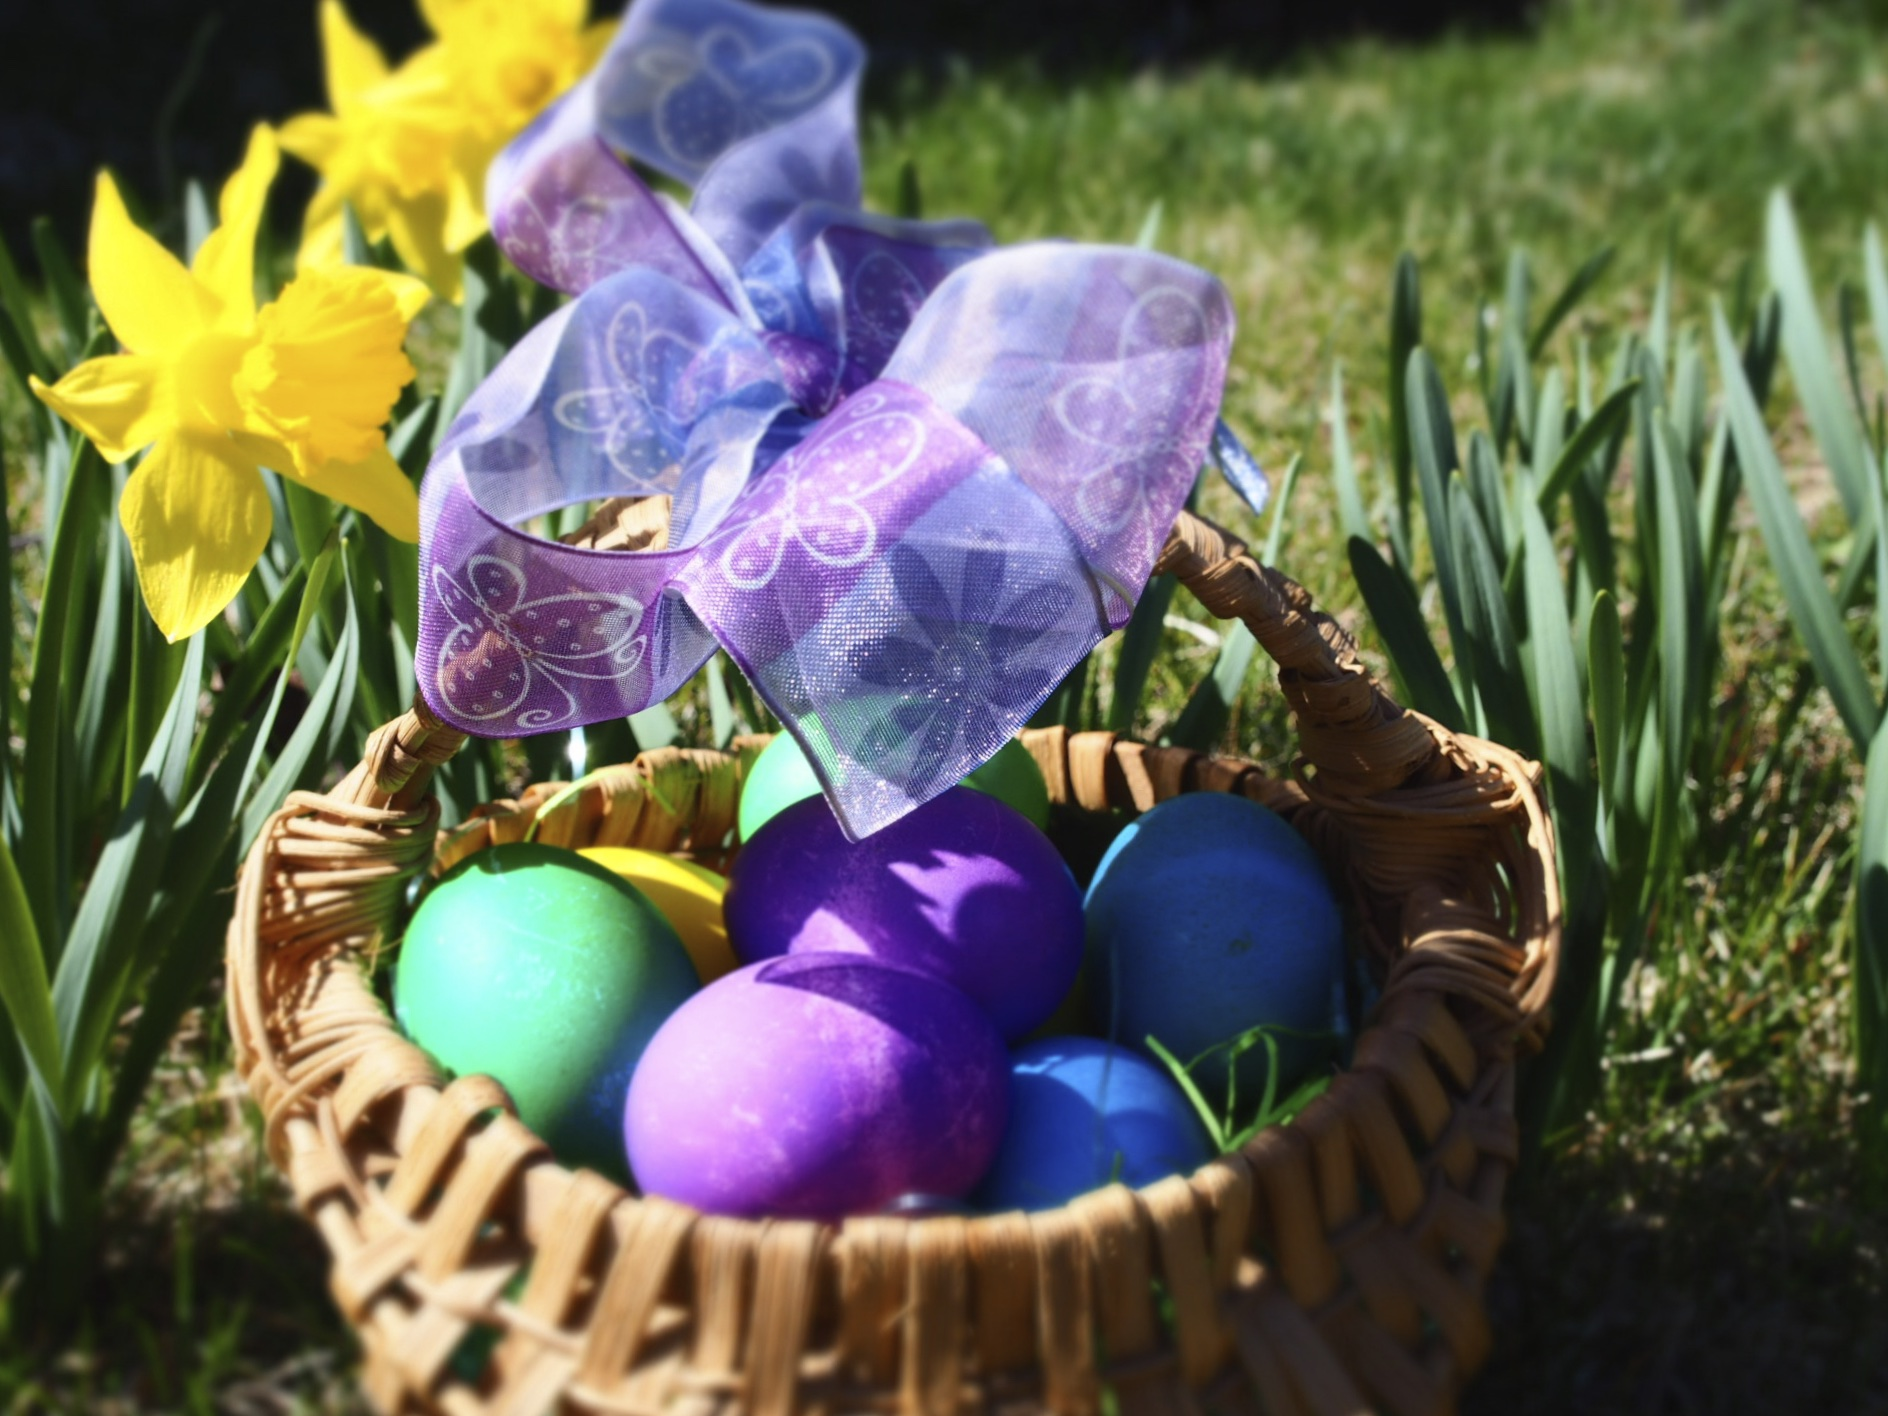 Pictures of our Easter eggs and my Easter basket in the front yard with the spring daffodils.  ChloëRain©  2015